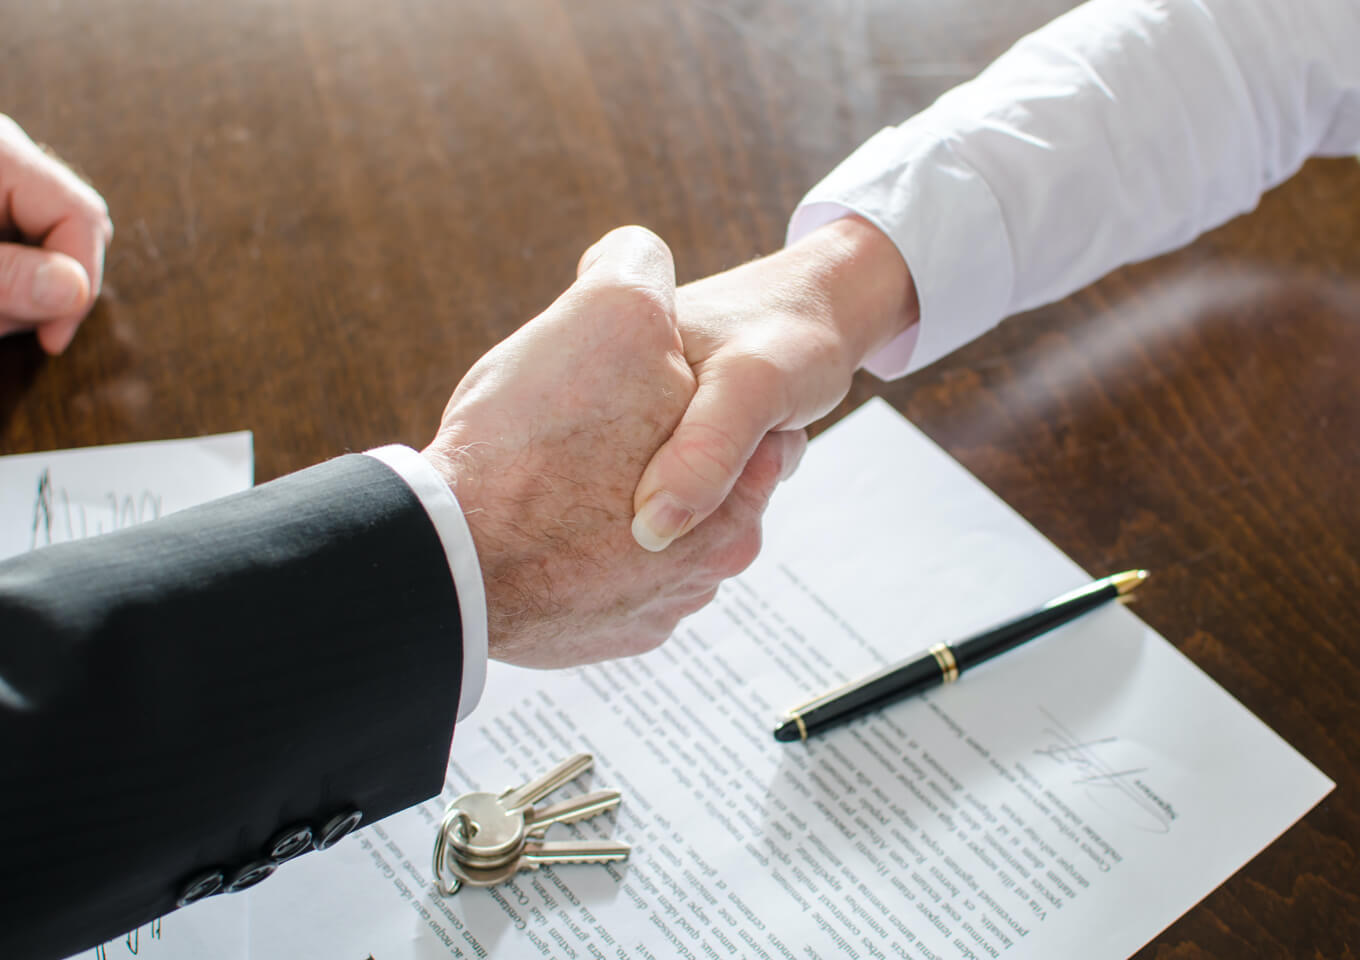 Two people shake hands after signing a lease